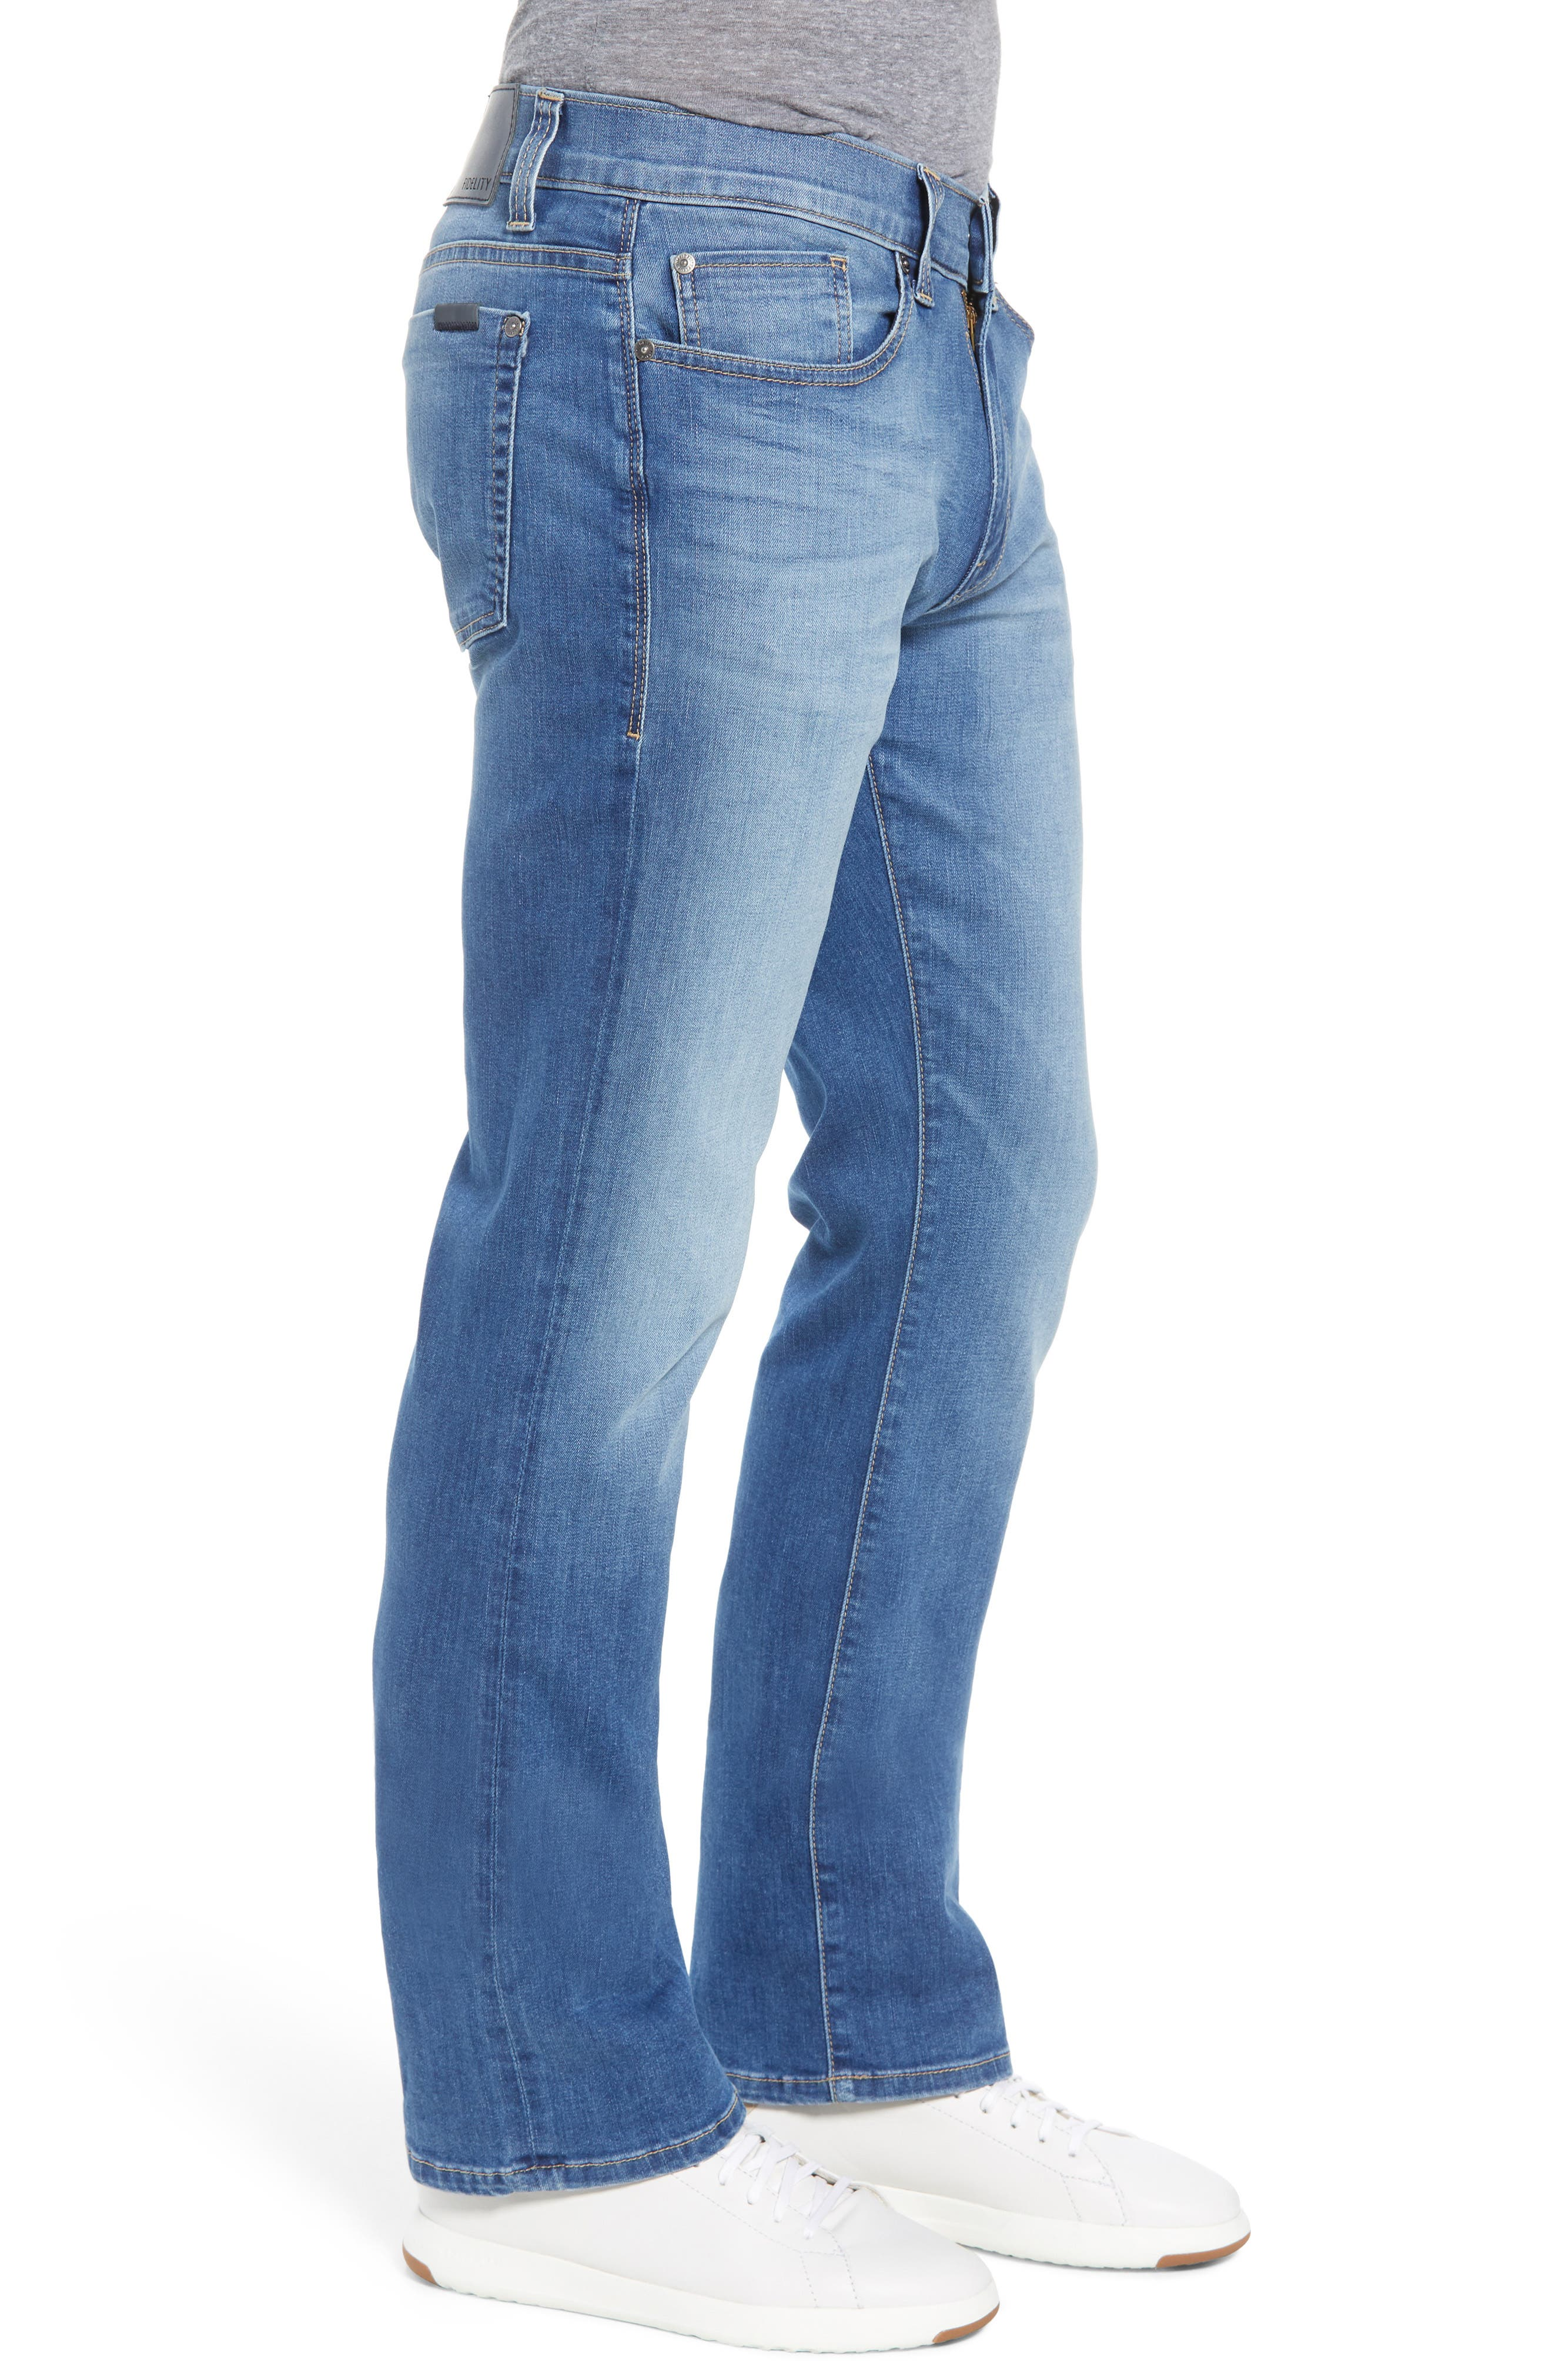 50-11 Relaxed Fit Jeans,                             Alternate thumbnail 3, color,